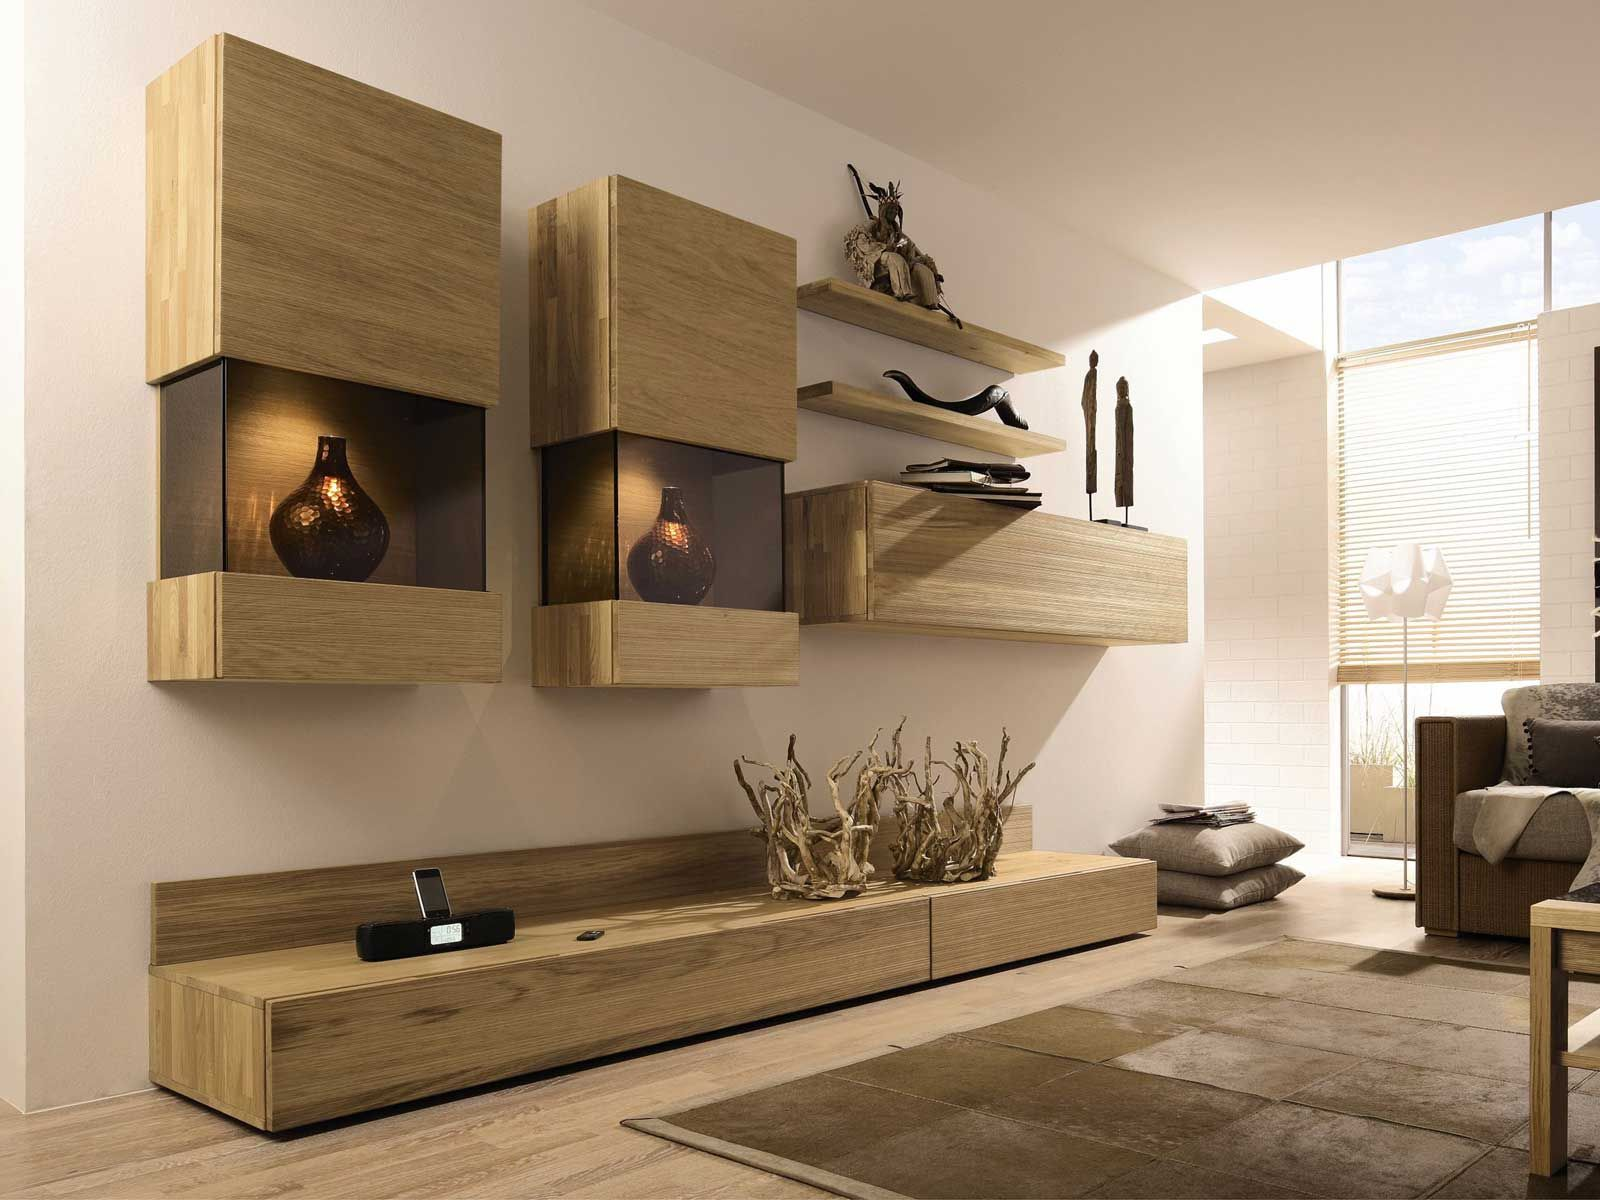 mueble modular de pared composable lacado con soporte para tv elea mueble modular de pared